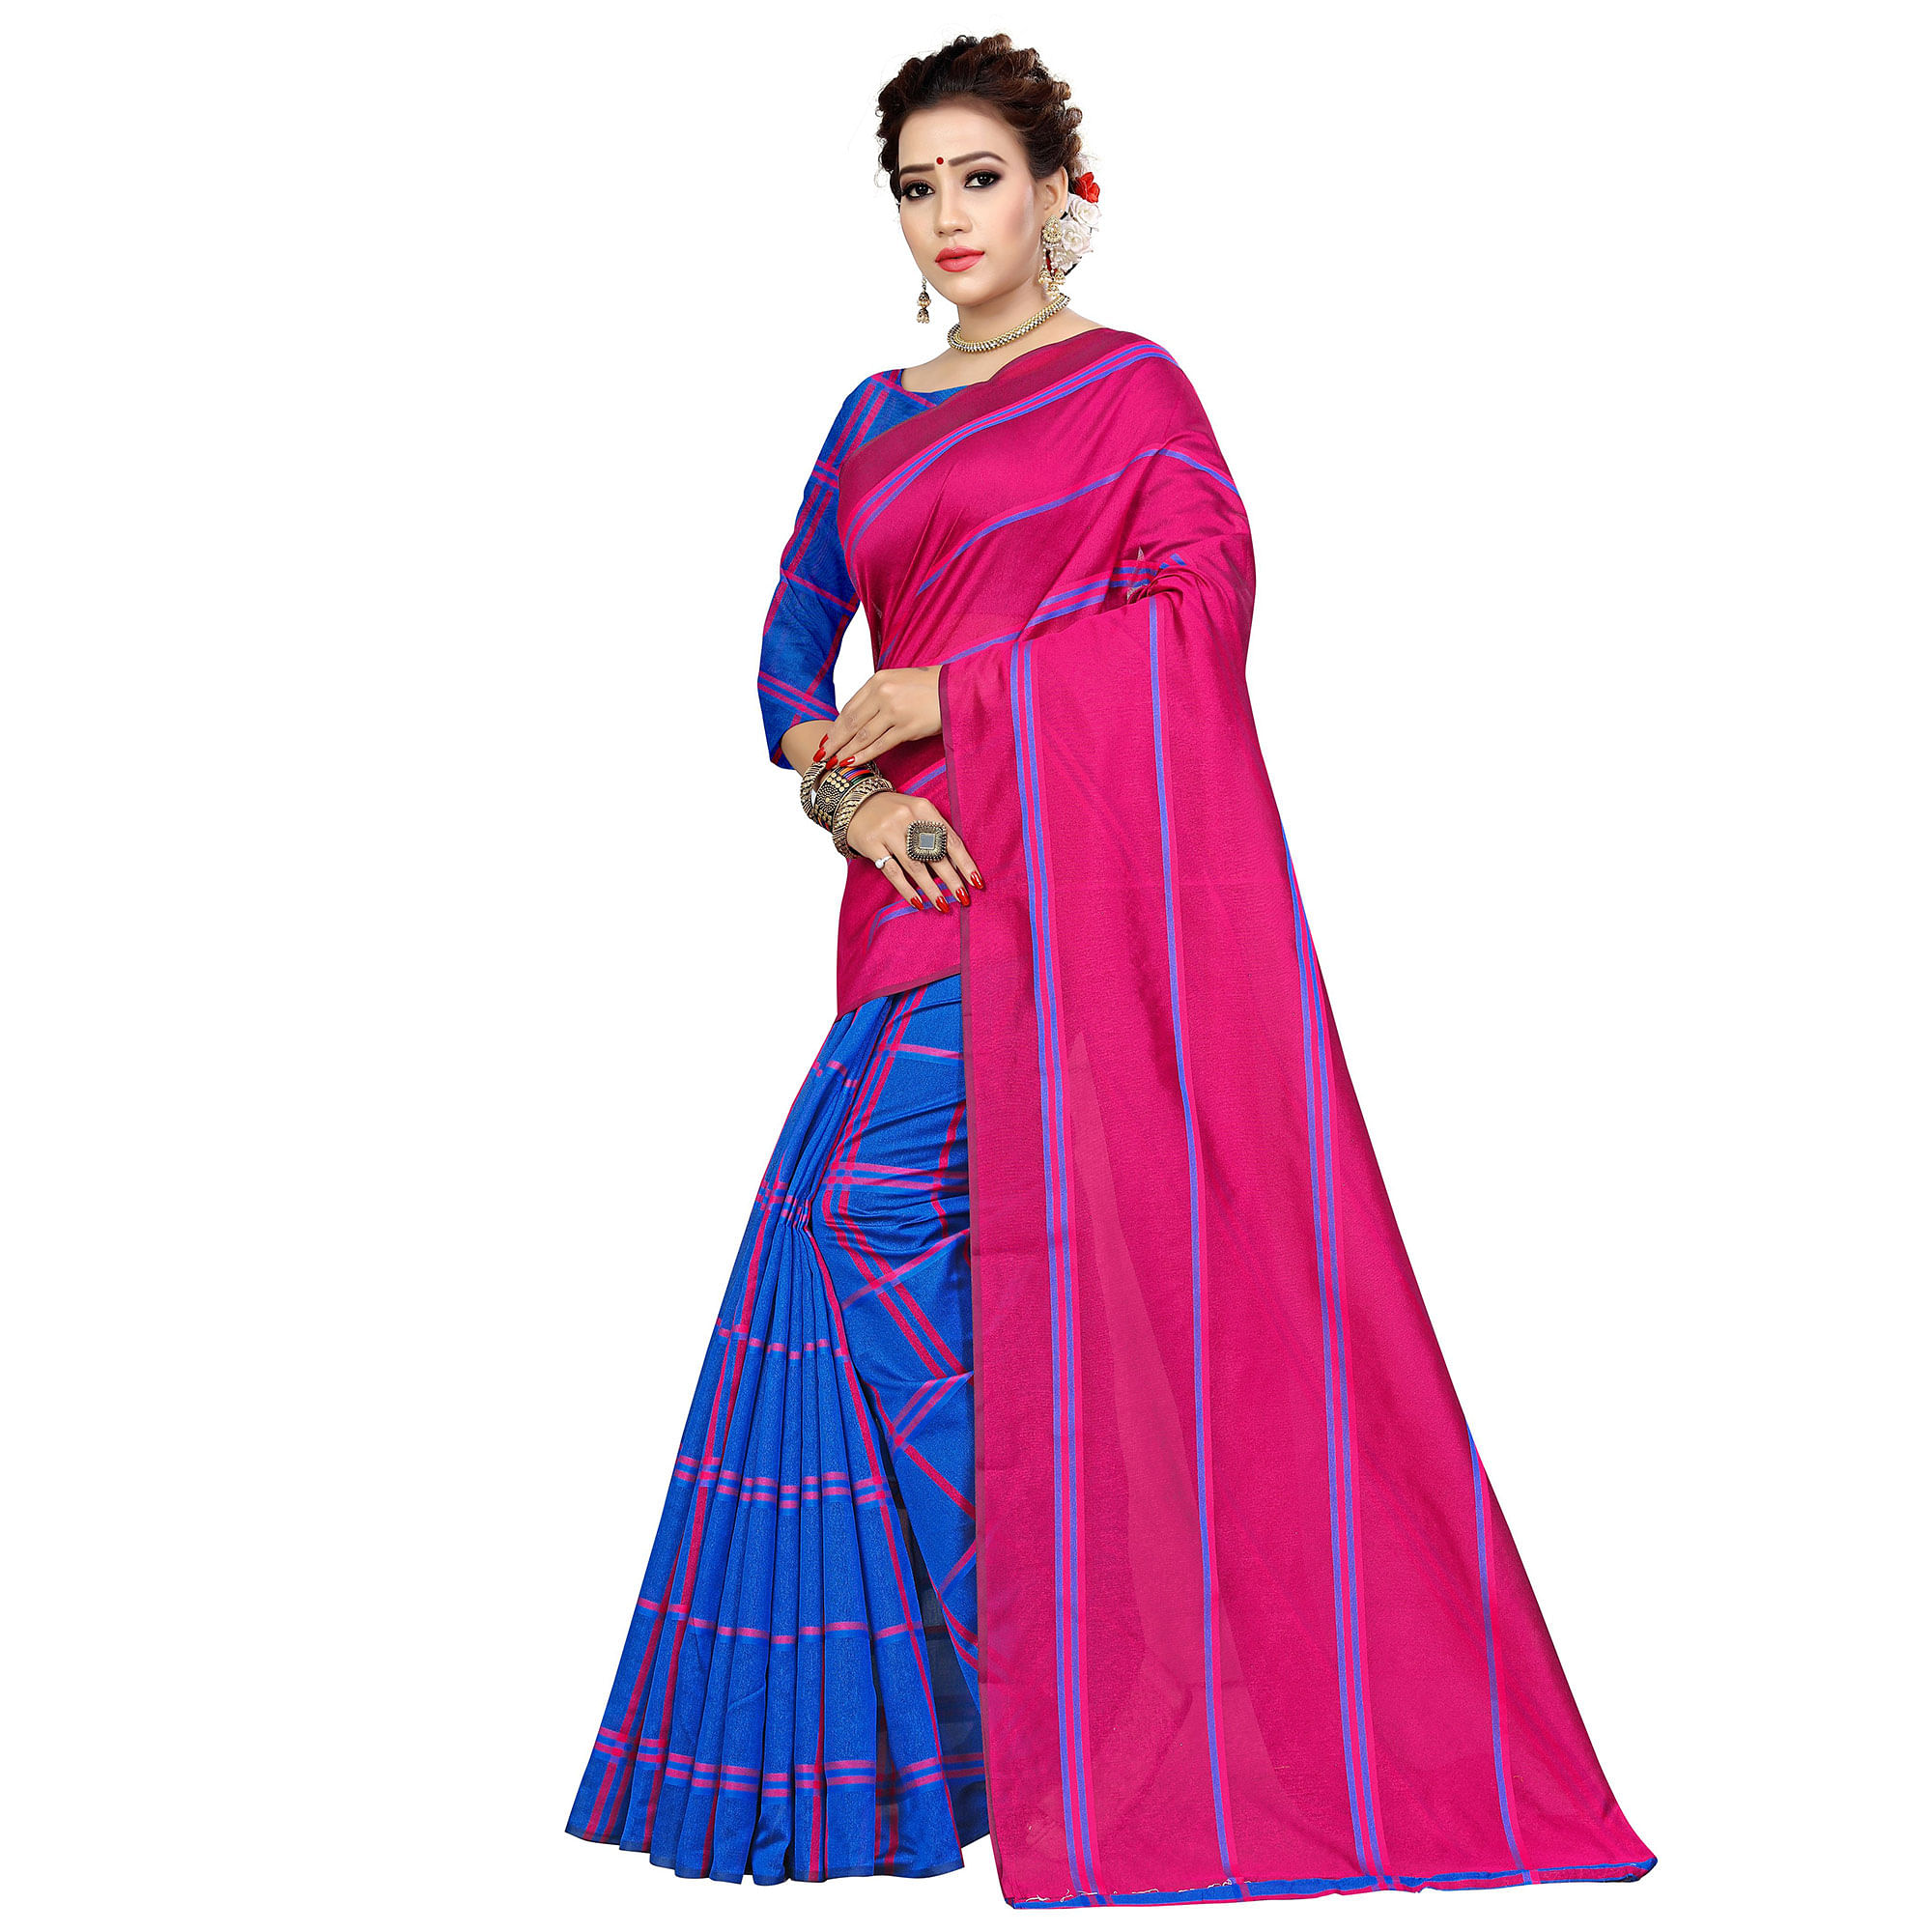 Marvellous Pink-Blue Colored Casual Printed Cotton Silk Saree